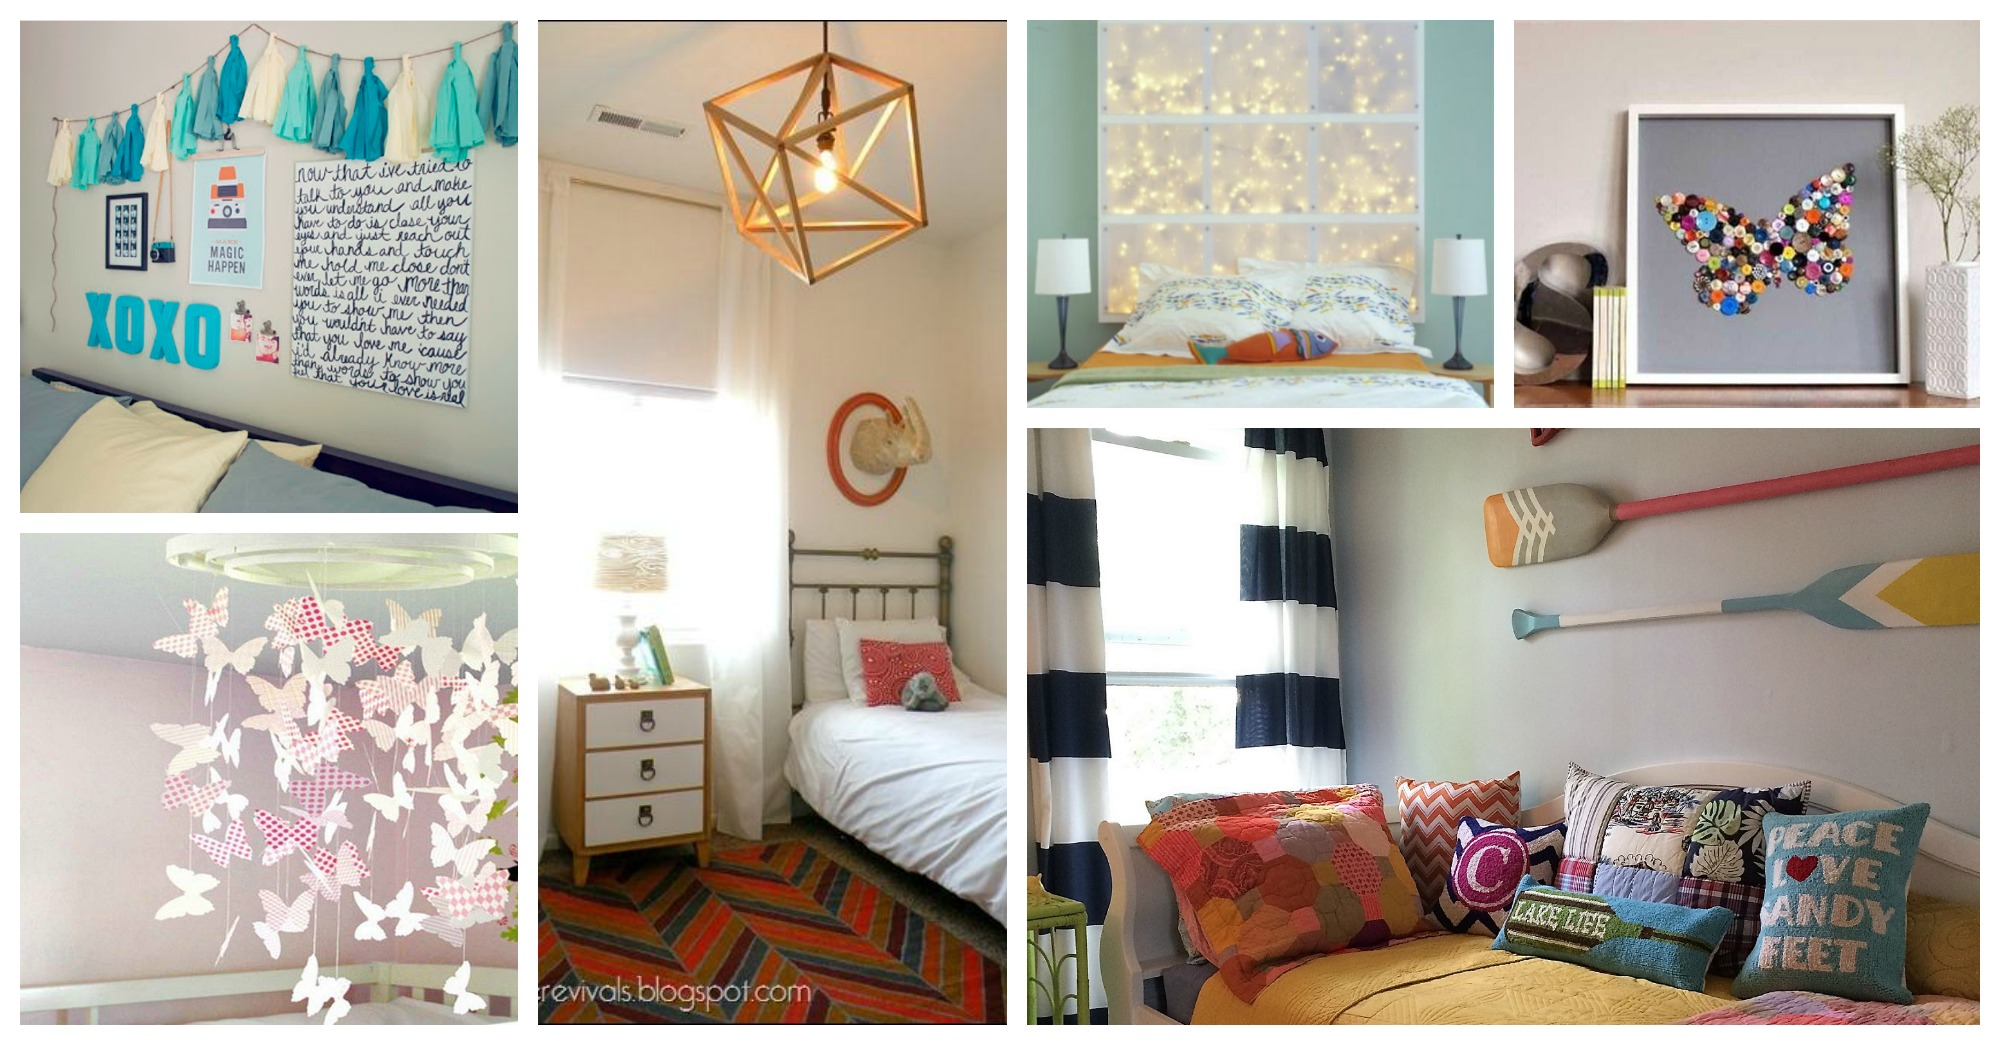 Lovely DIY Bedroom Decorations That You Can Make On A Tight Budget